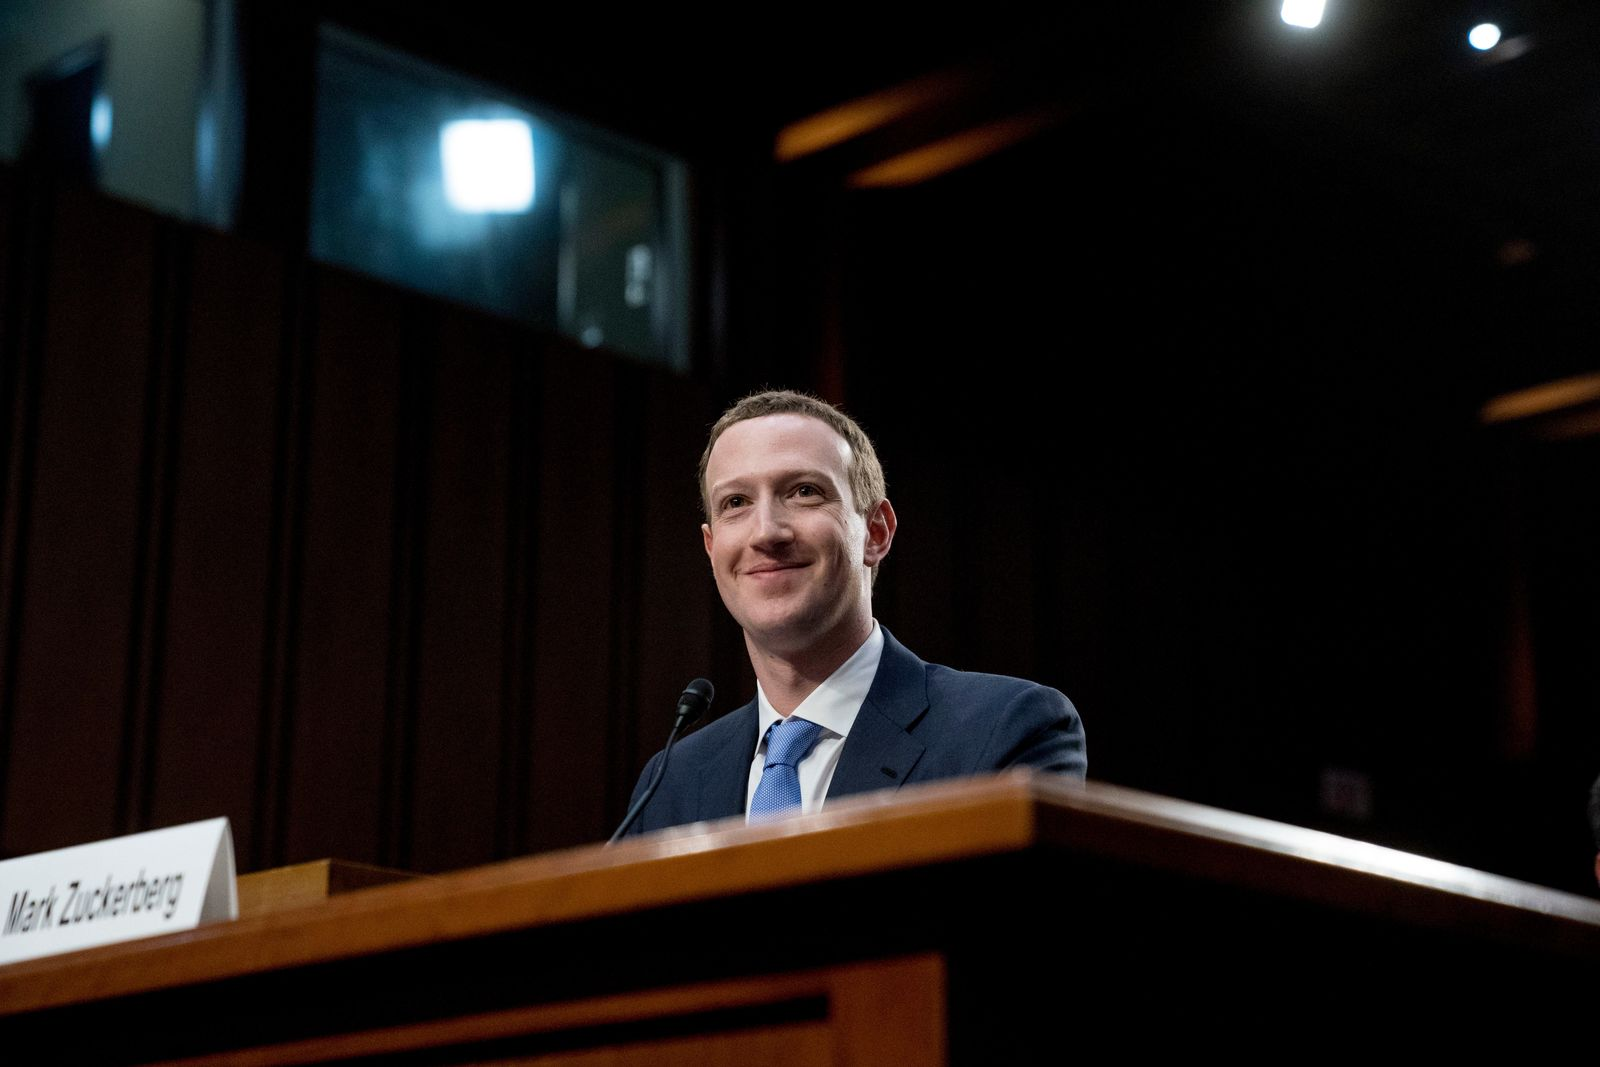 Facebook CEO Mark Zuckerberg smiles while testifying before a joint hearing of the Commerce and Judiciary Committees on Capitol Hill in Washington, Tuesday, April 10, 2018, about the use of Facebook data to target American voters in the 2016 election. (AP Photo/Andrew Harnik)